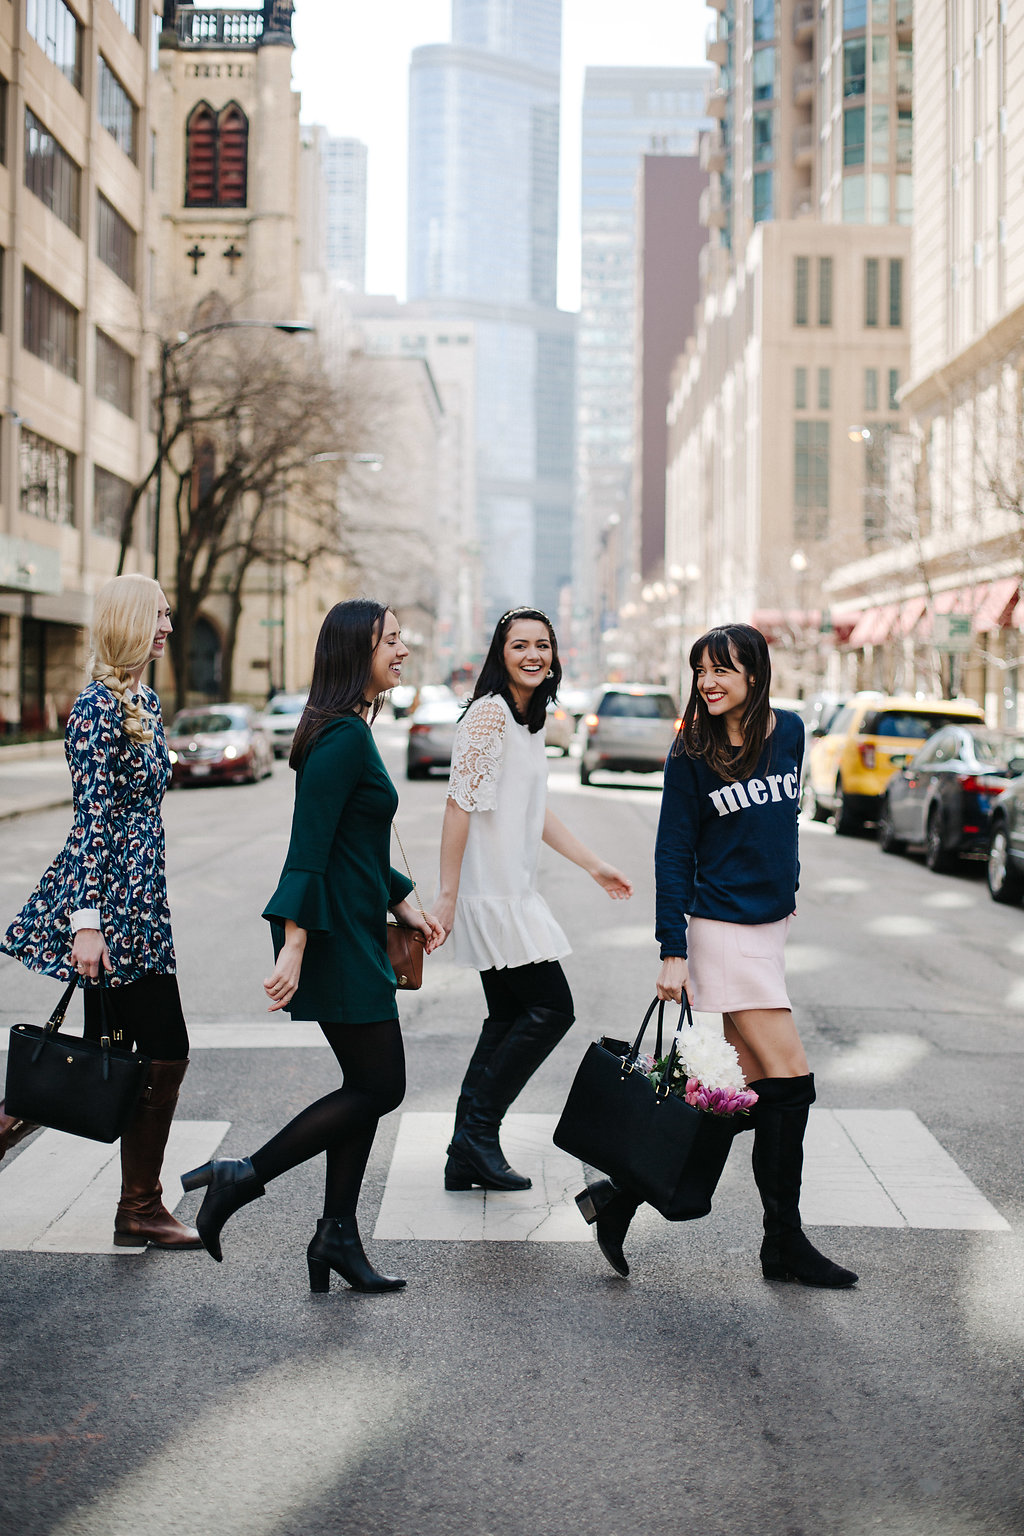 Chicago Sister Weekend Whatsundaysarefor - Museums on us list